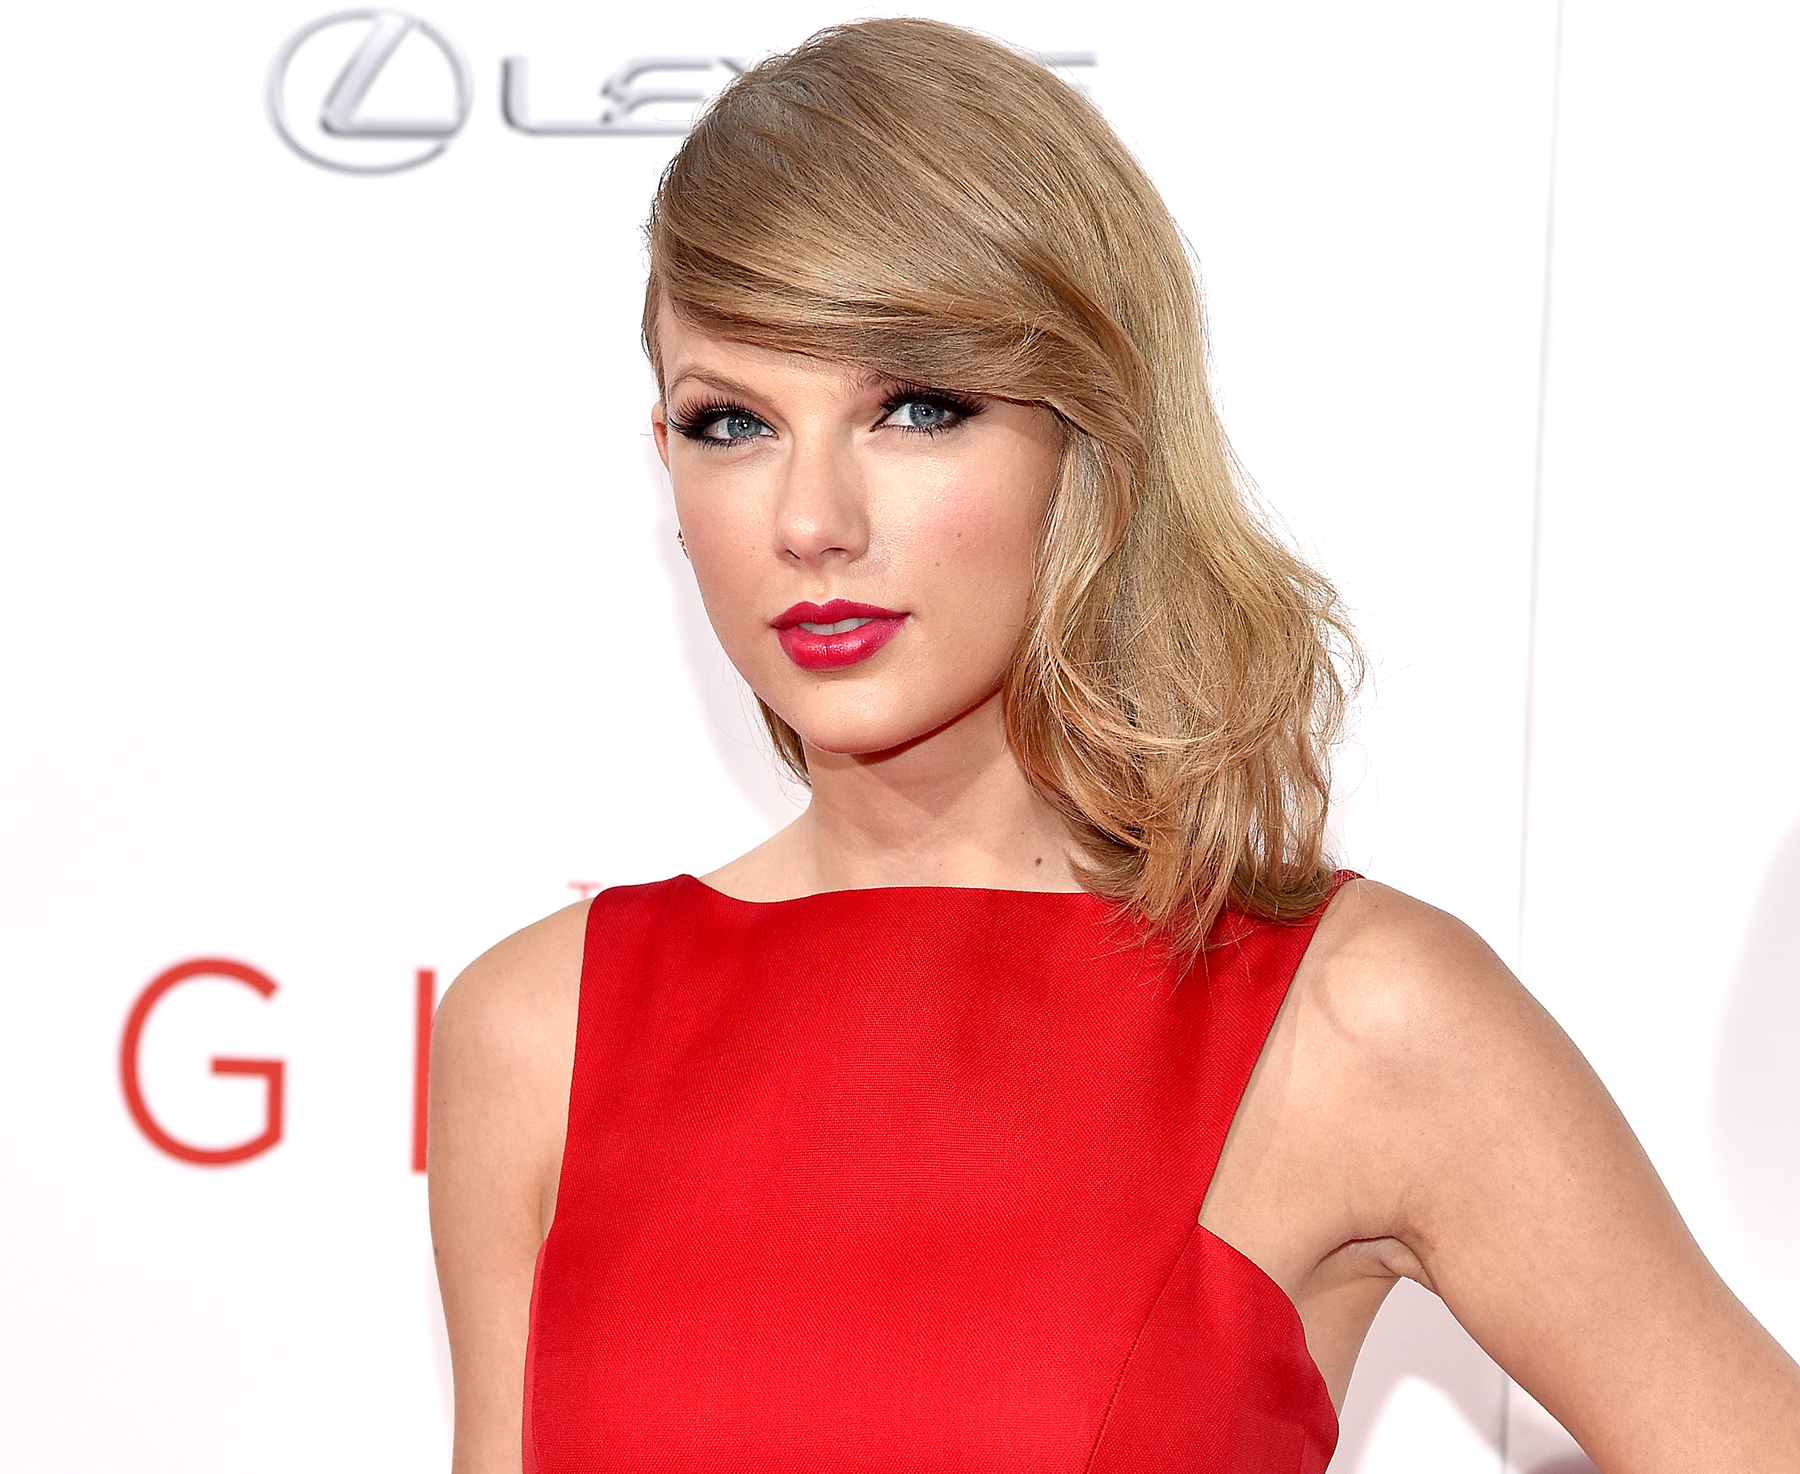 Taylor Swift's Motion to Dismiss DJ David Mueller's Case Against Her Denied By Judge